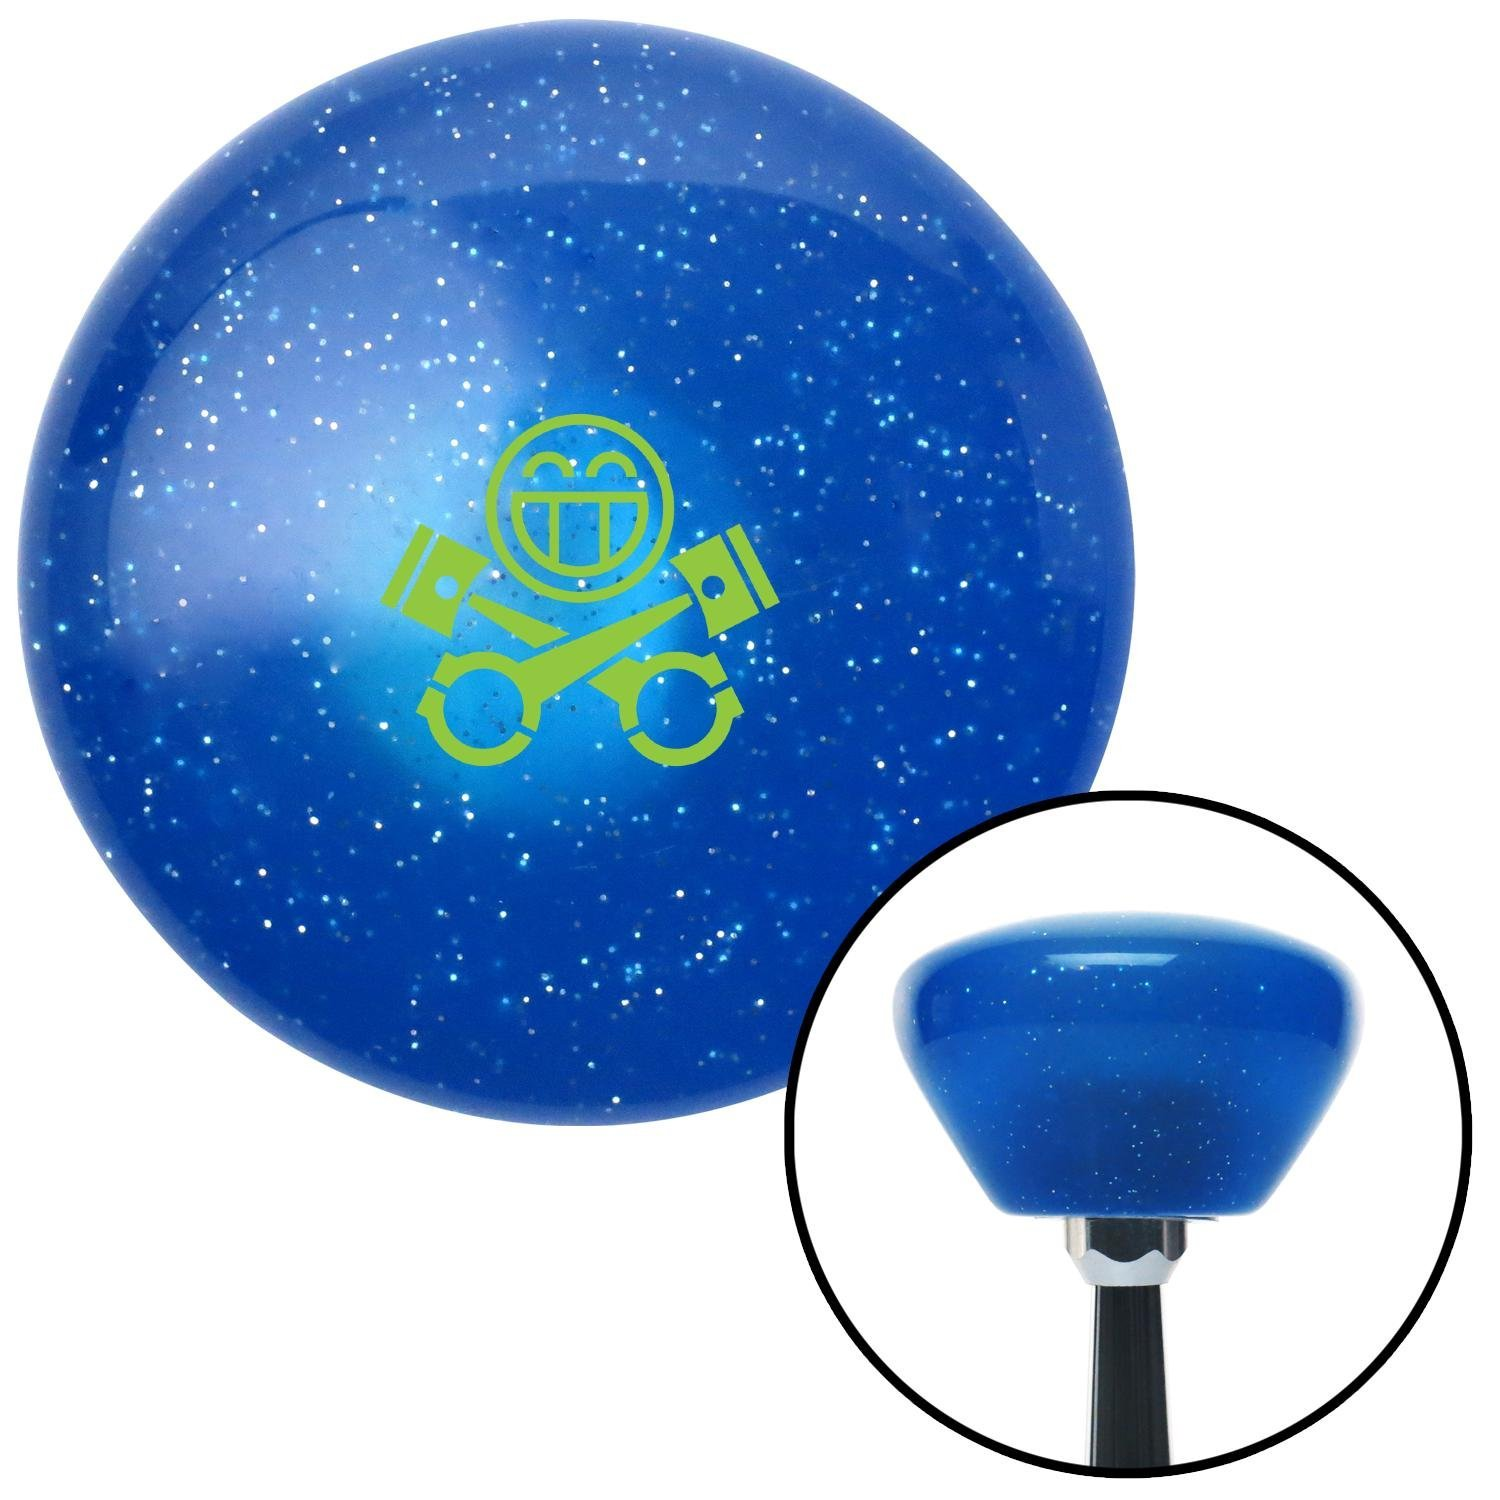 American Shifter 289780 Shift Knob Green Smiley Pistons Blue Retro Metal Flake with M16 x 1.5 Insert